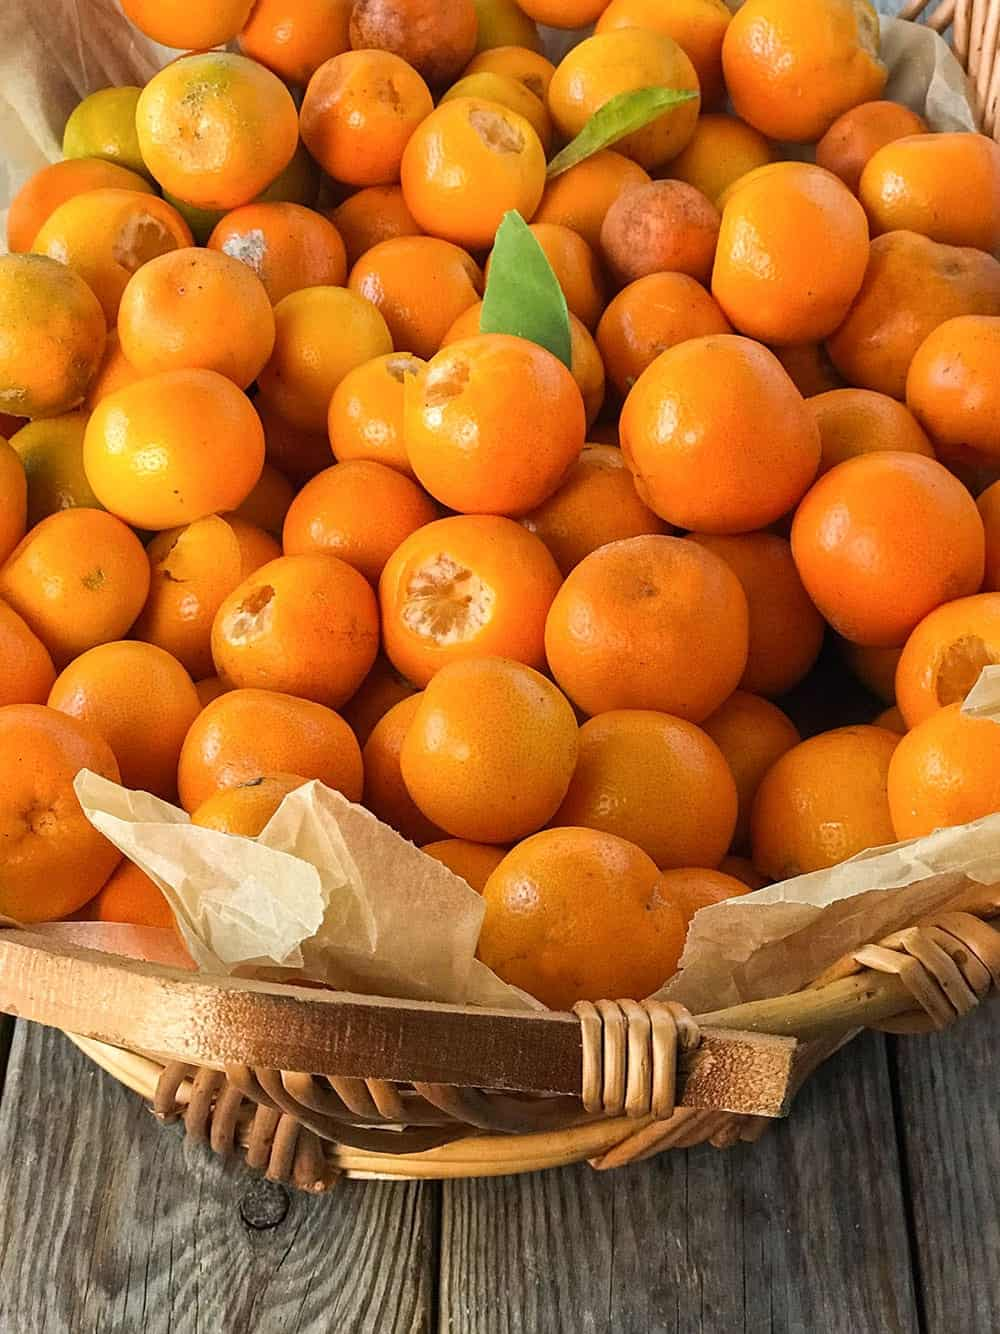 Meiwa kumquat for making marmalade in a basket